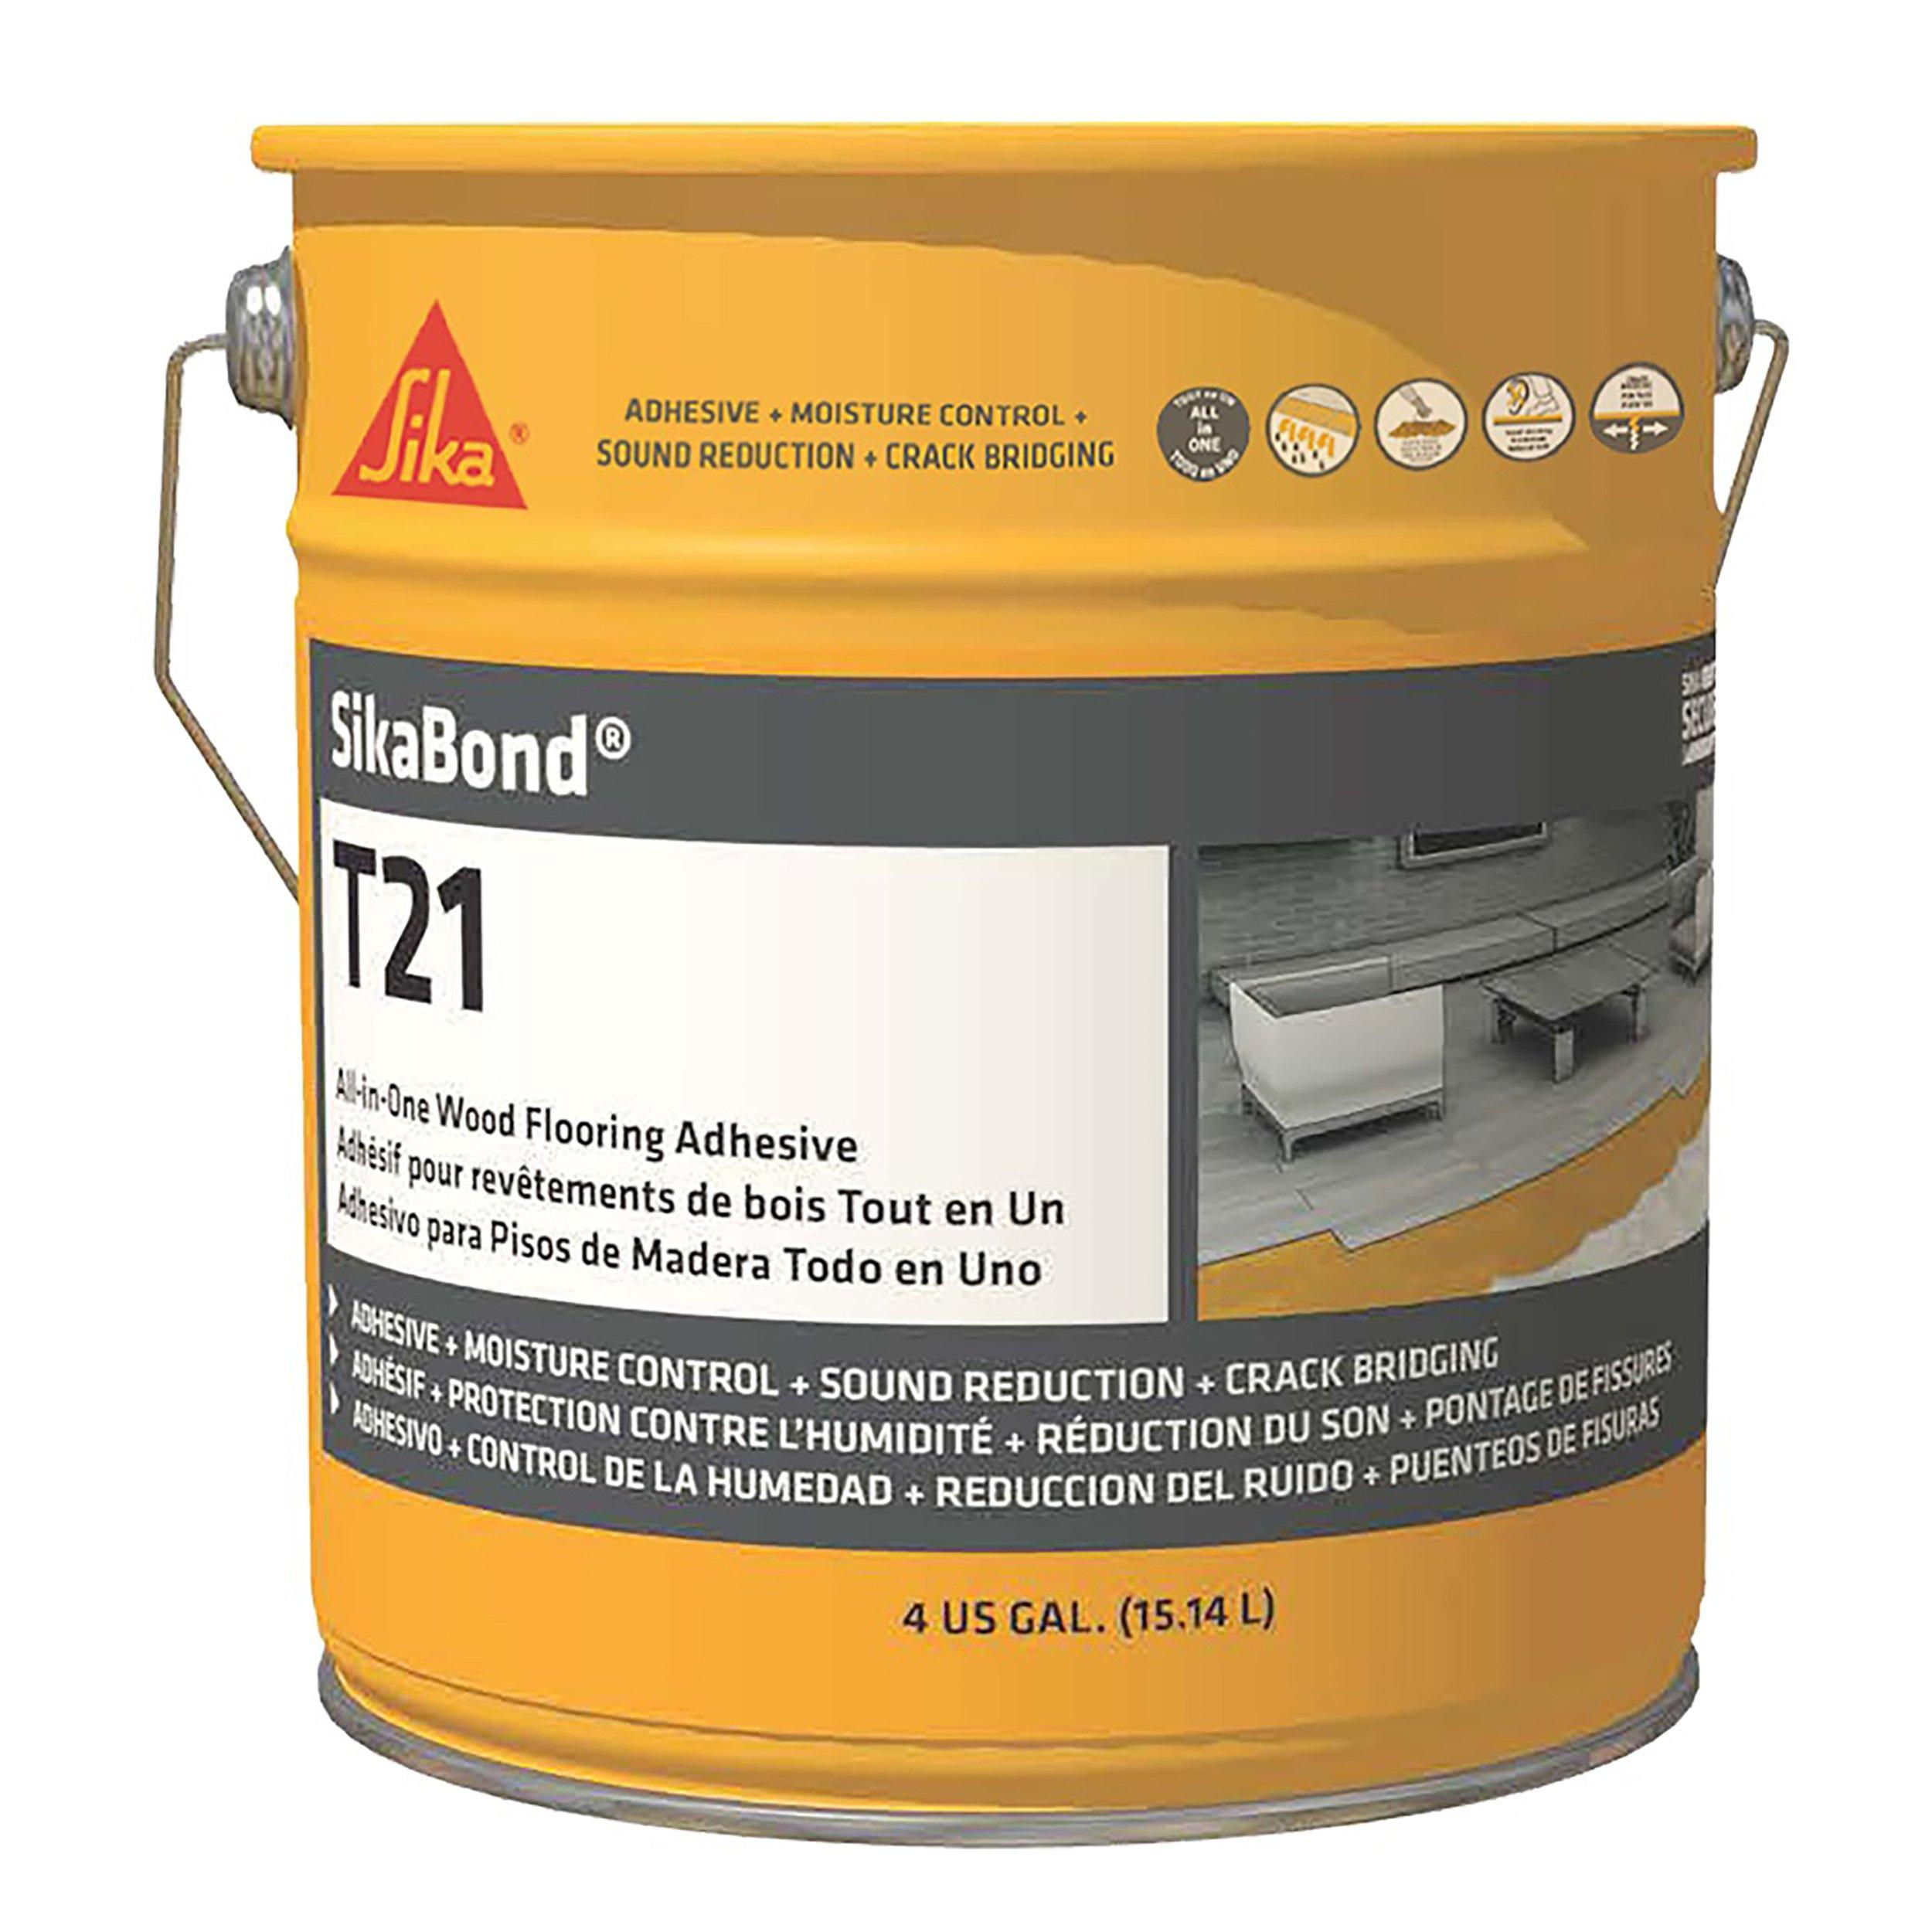 Sika Sikabond T21 Polyurethane Adhesive For Wood Floors   4gal.   954100236  | Floor And Decor